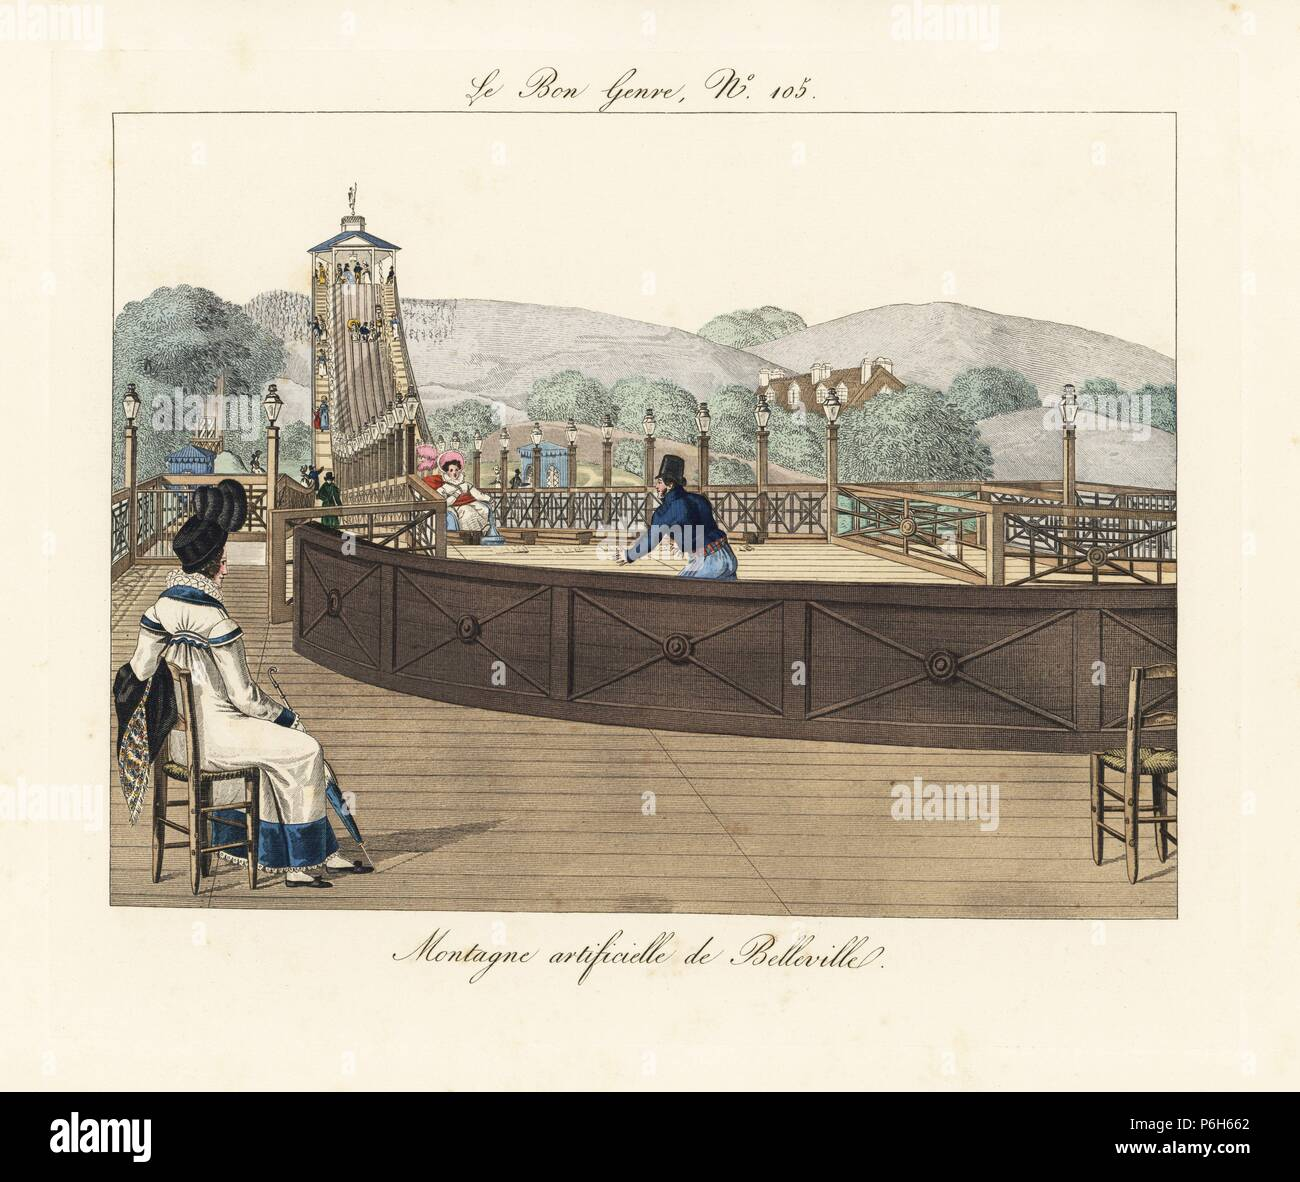 The roller coaster at Belleville with its five cars riding a distance of 600 feet in 9 or 10 seconds. A fashionable woman in plumed bonnet, shawl and parasol watches from the terrace. Handcoloured engraving from Pierre de la Mesangere's Le Bon Genre, Paris, 1817. - Stock Image